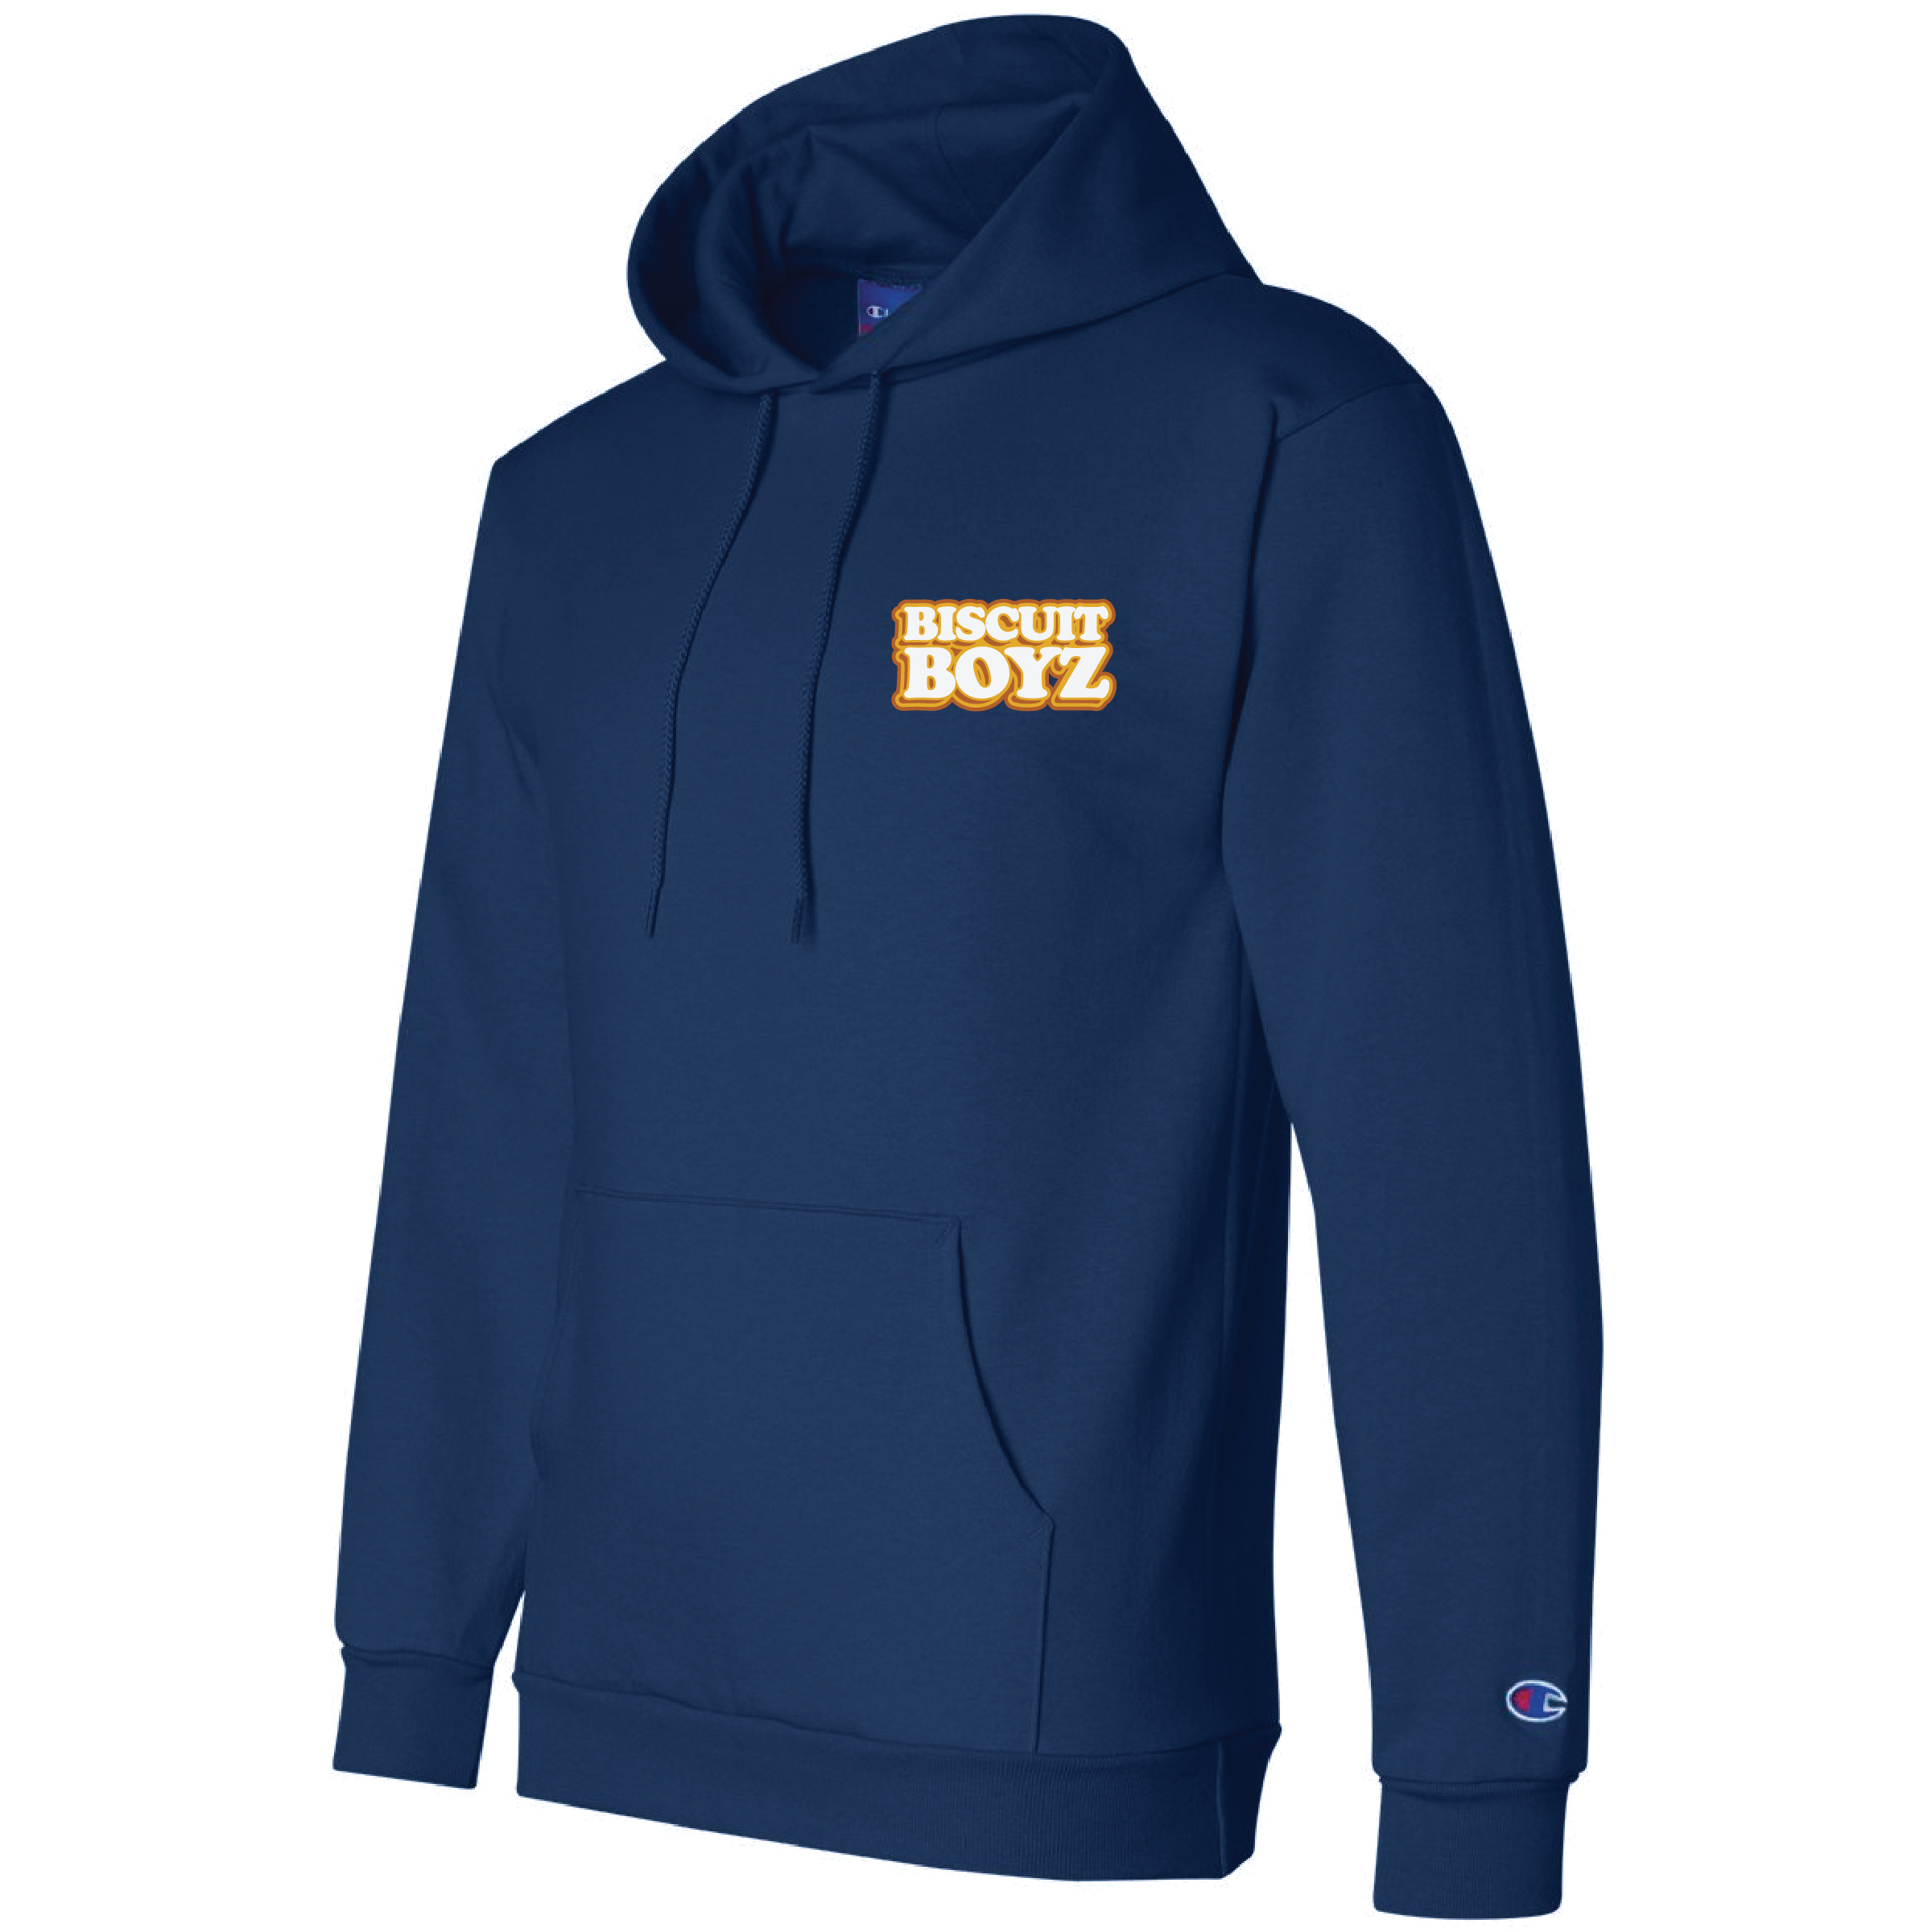 Biscuit Boyz Blue Hoodie Square